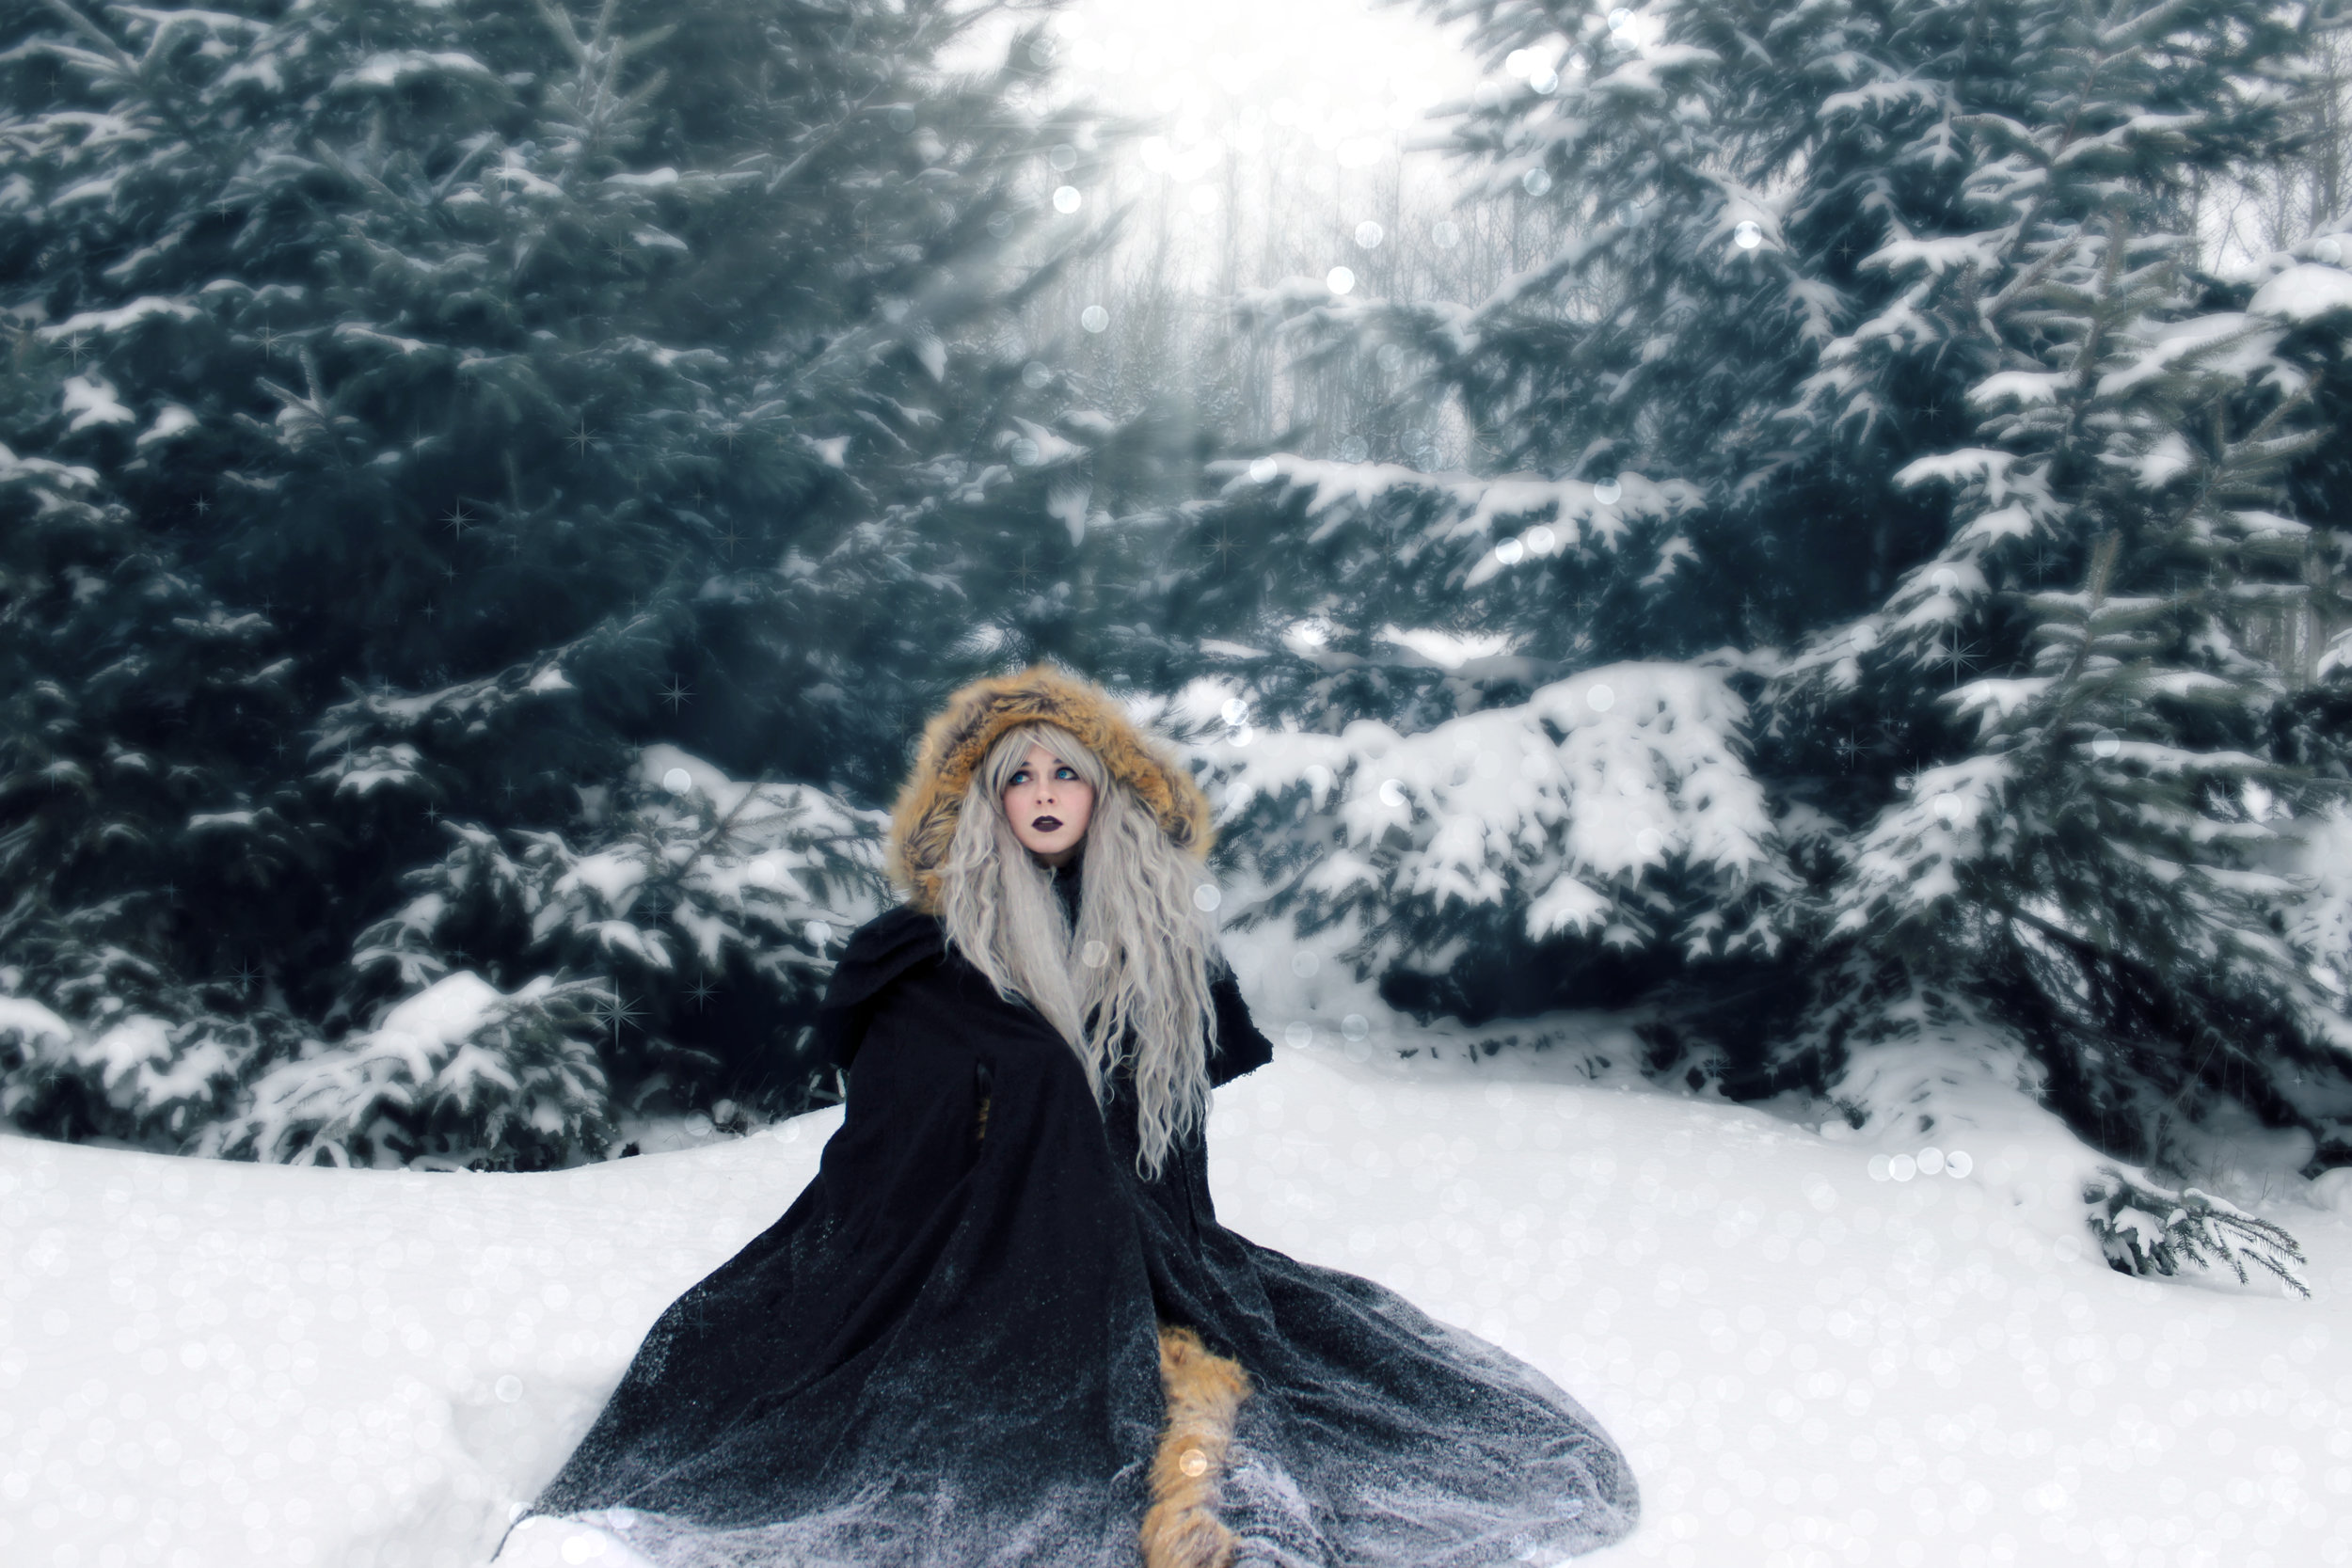 mermaid-phantom-in-the-snowy-forest-CAPE-blue-blur-sparkle.jpg